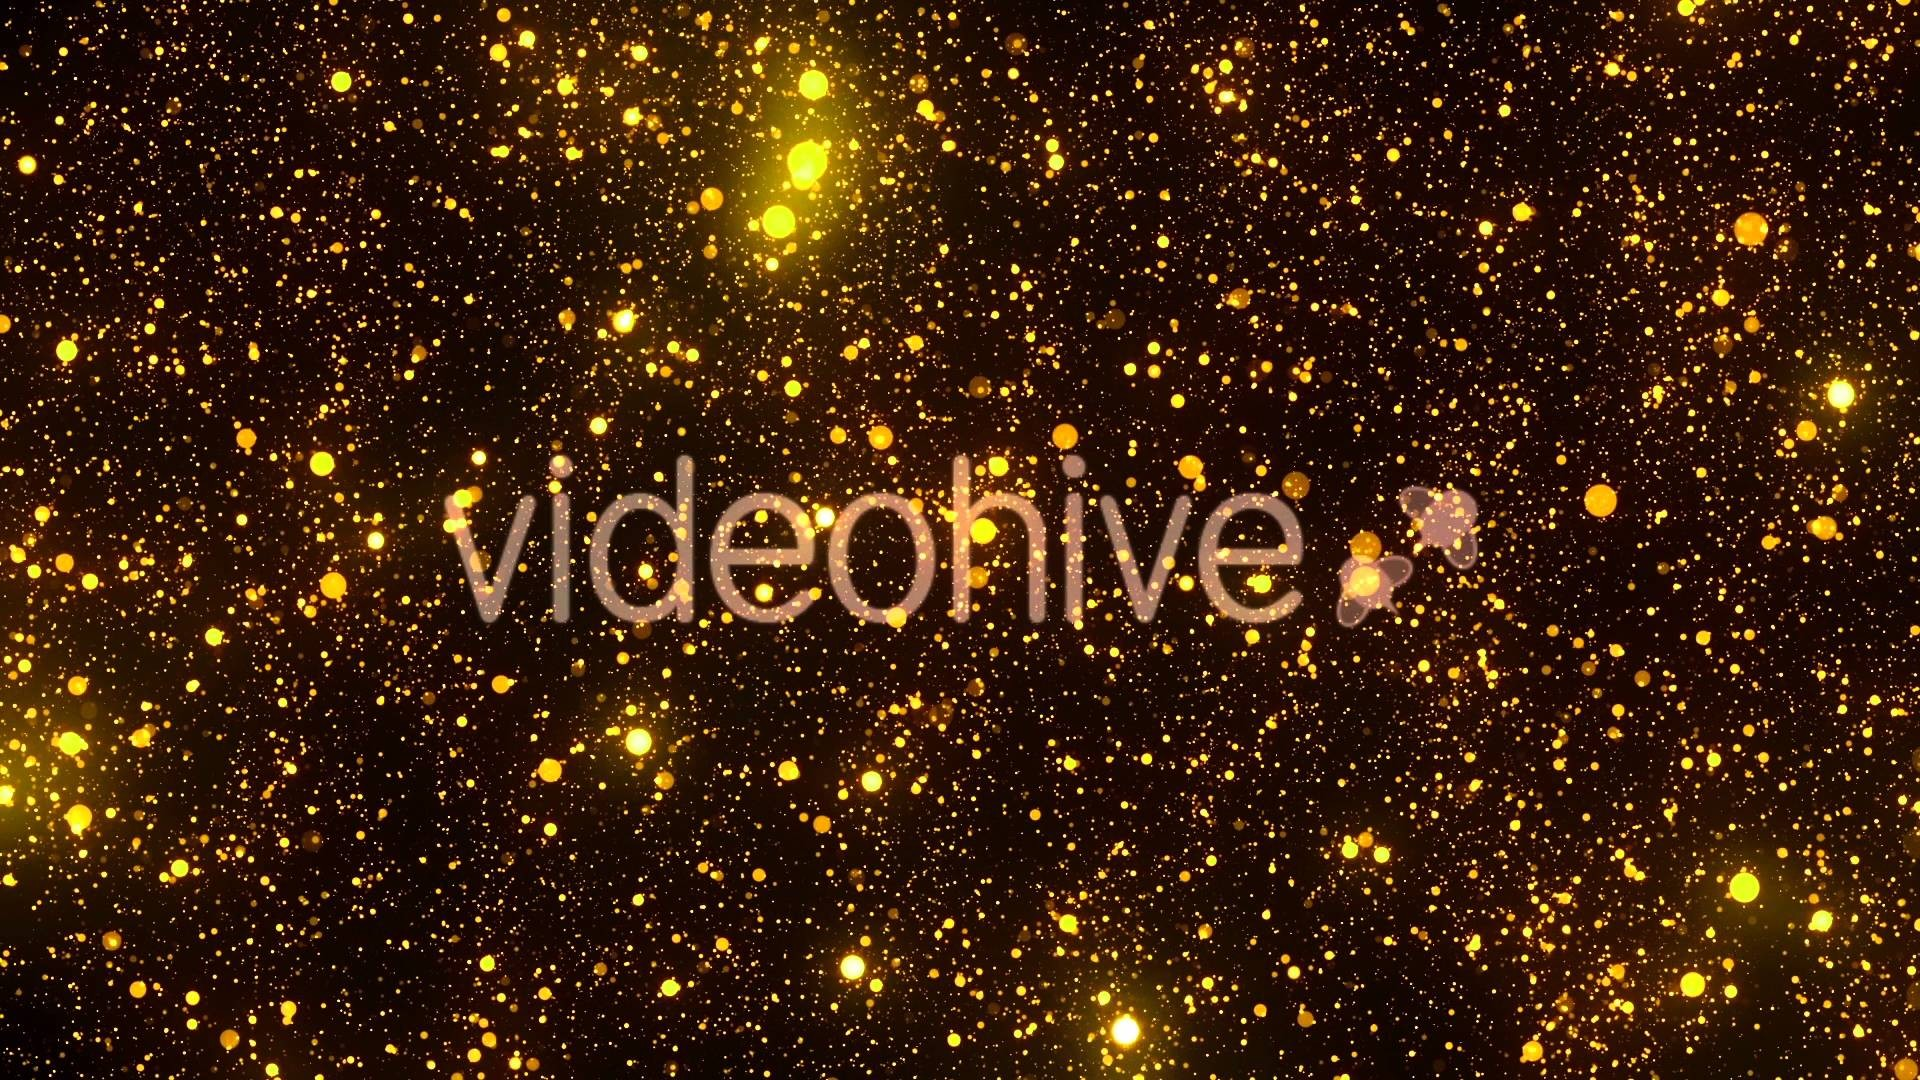 Gold sparkle background download free awesome full hd - Gold wallpaper for android ...